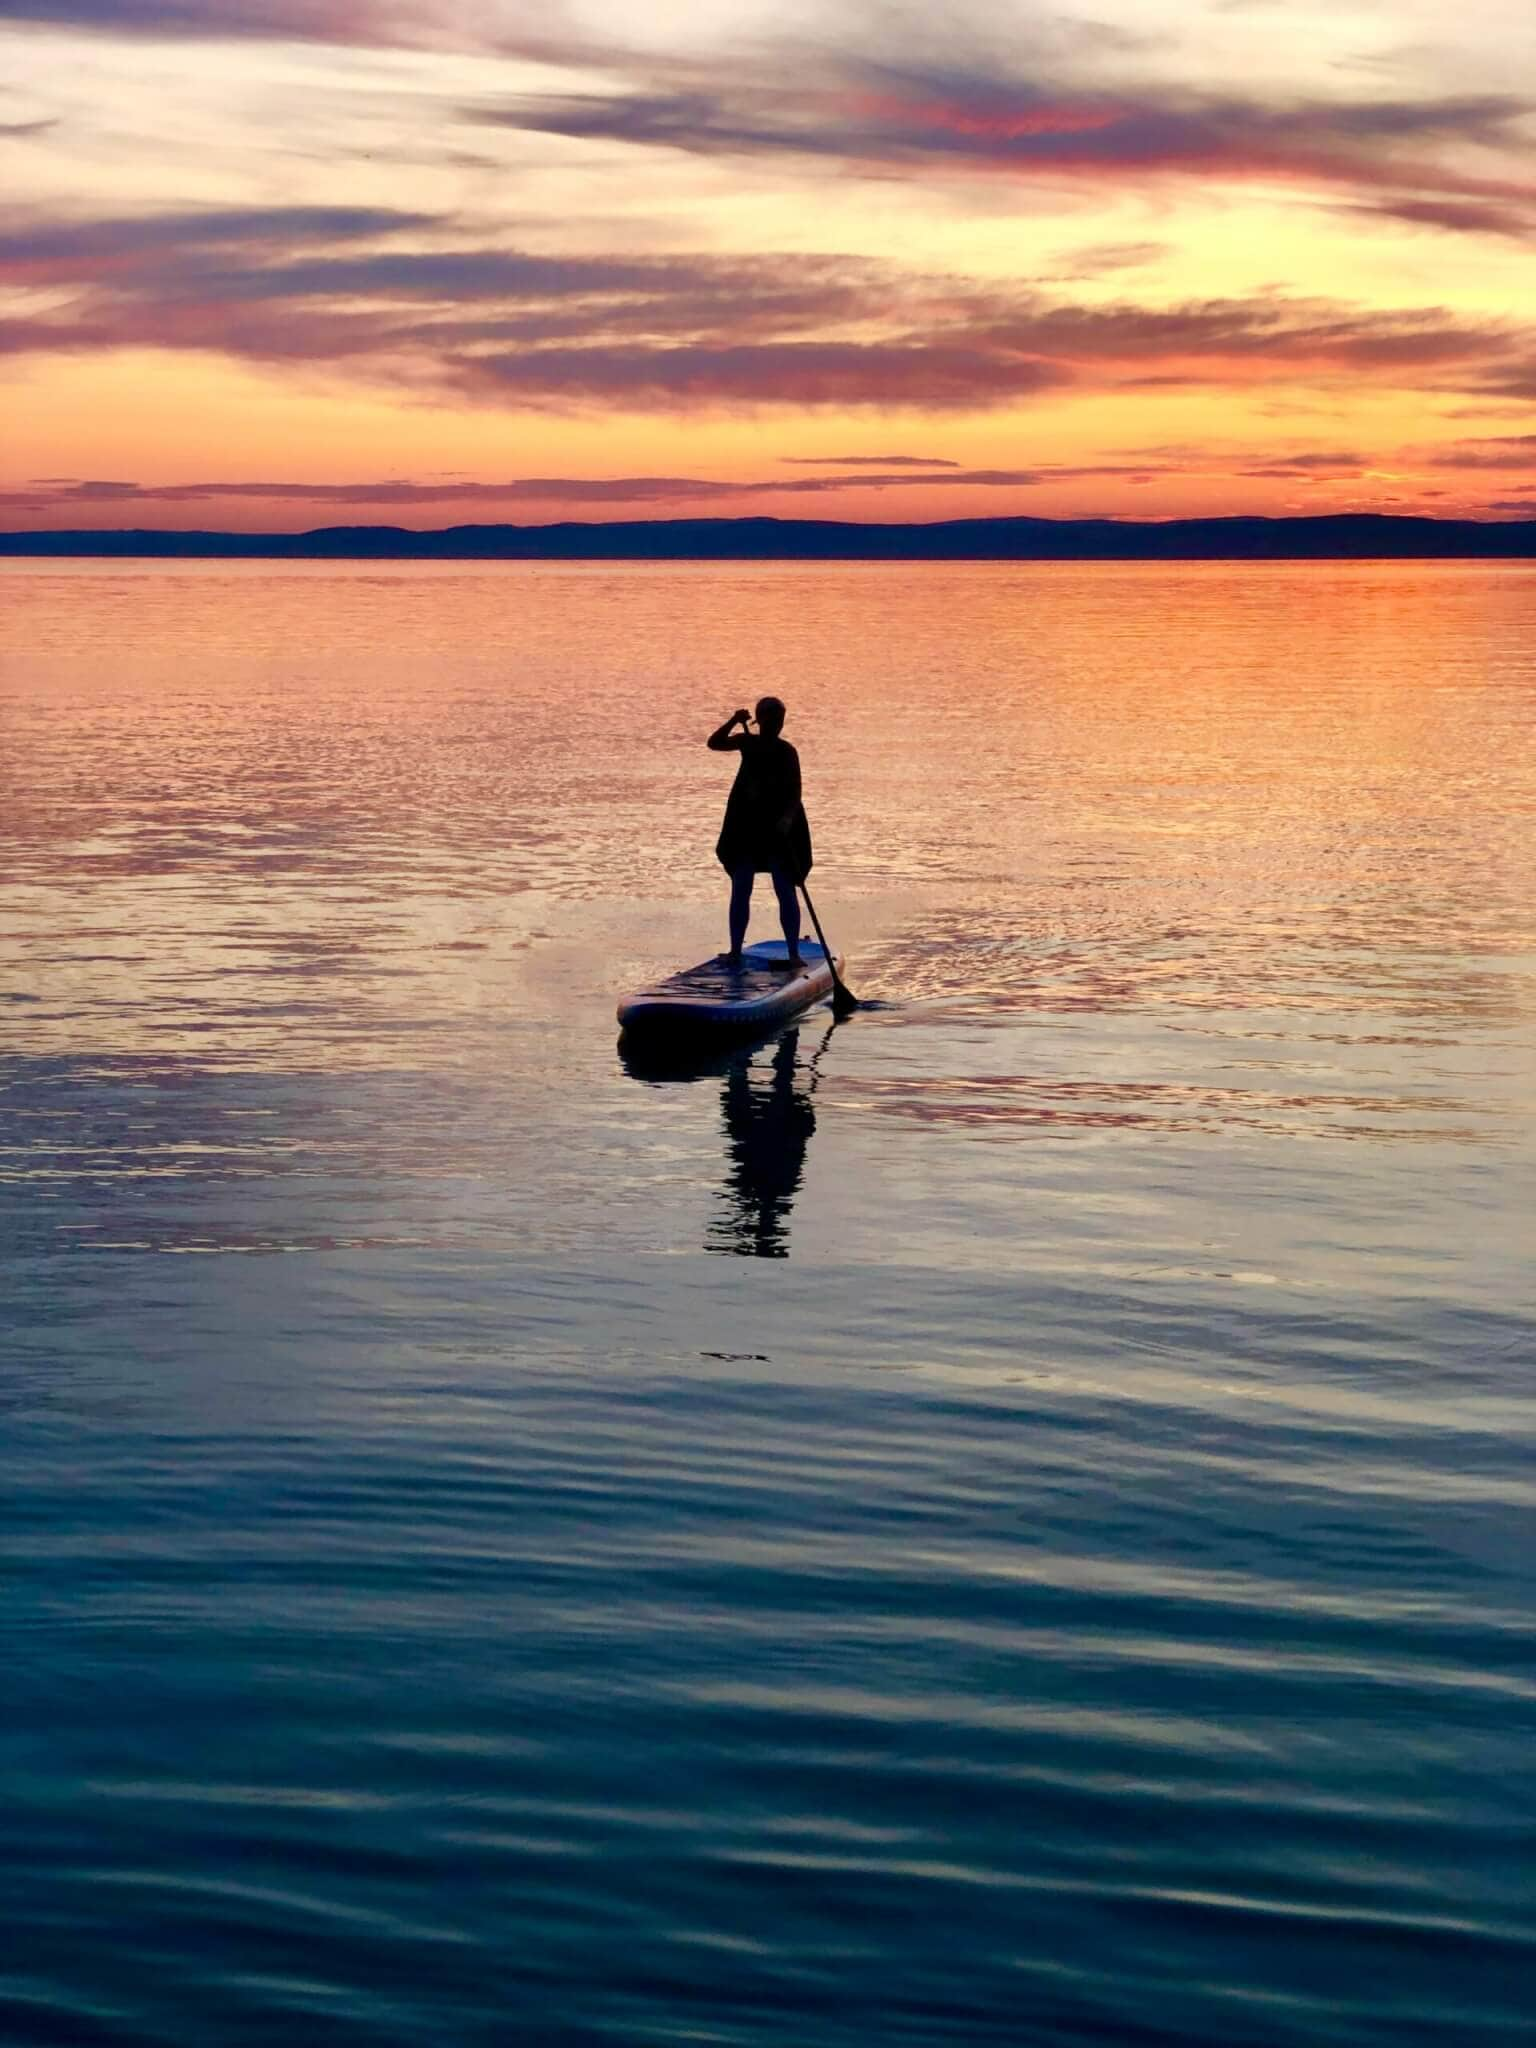 silhouette of person standing on paddle boat during golden hour